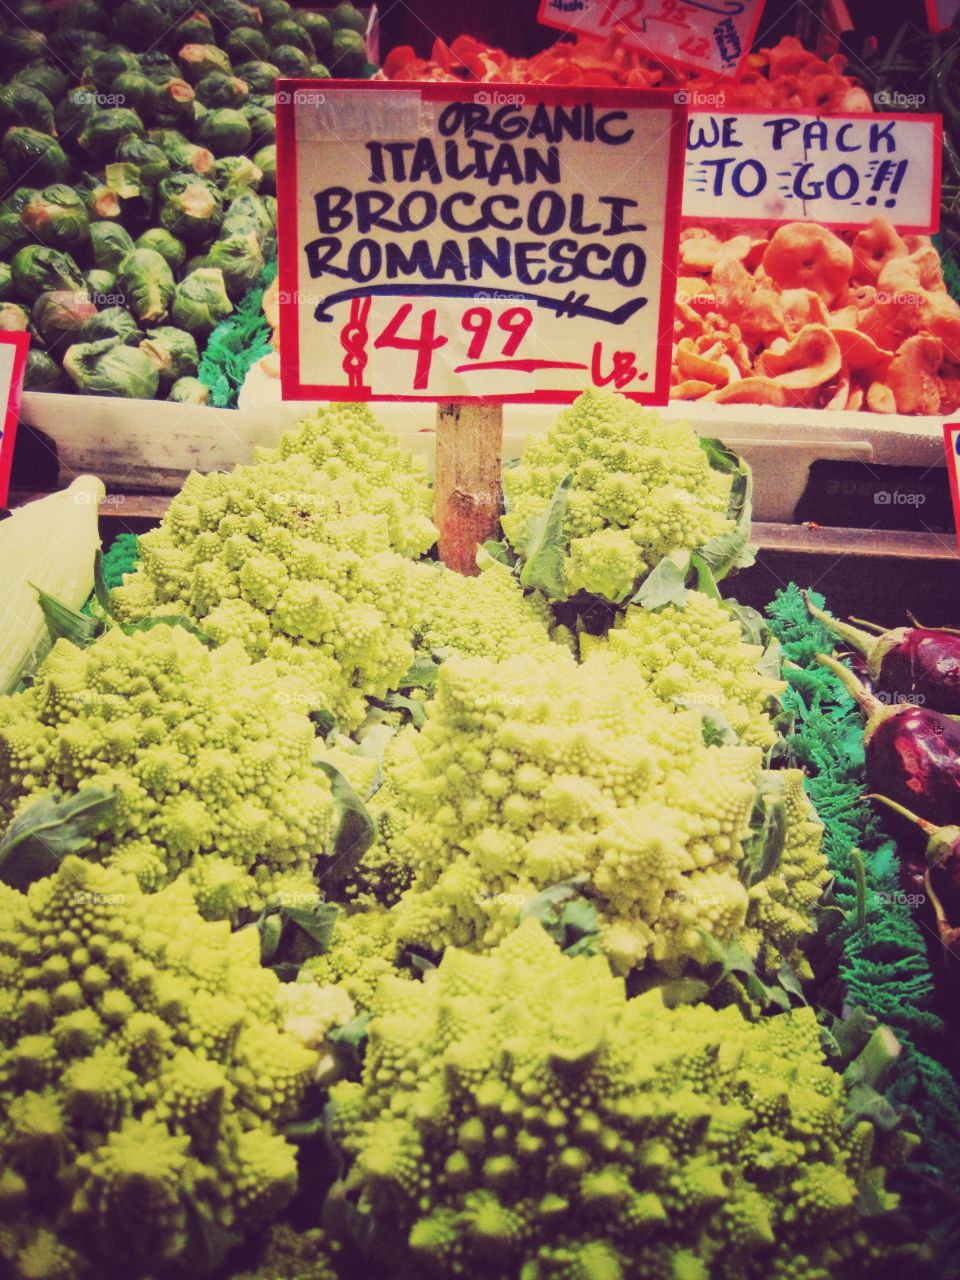 Market day. A crazy vegetable at the market